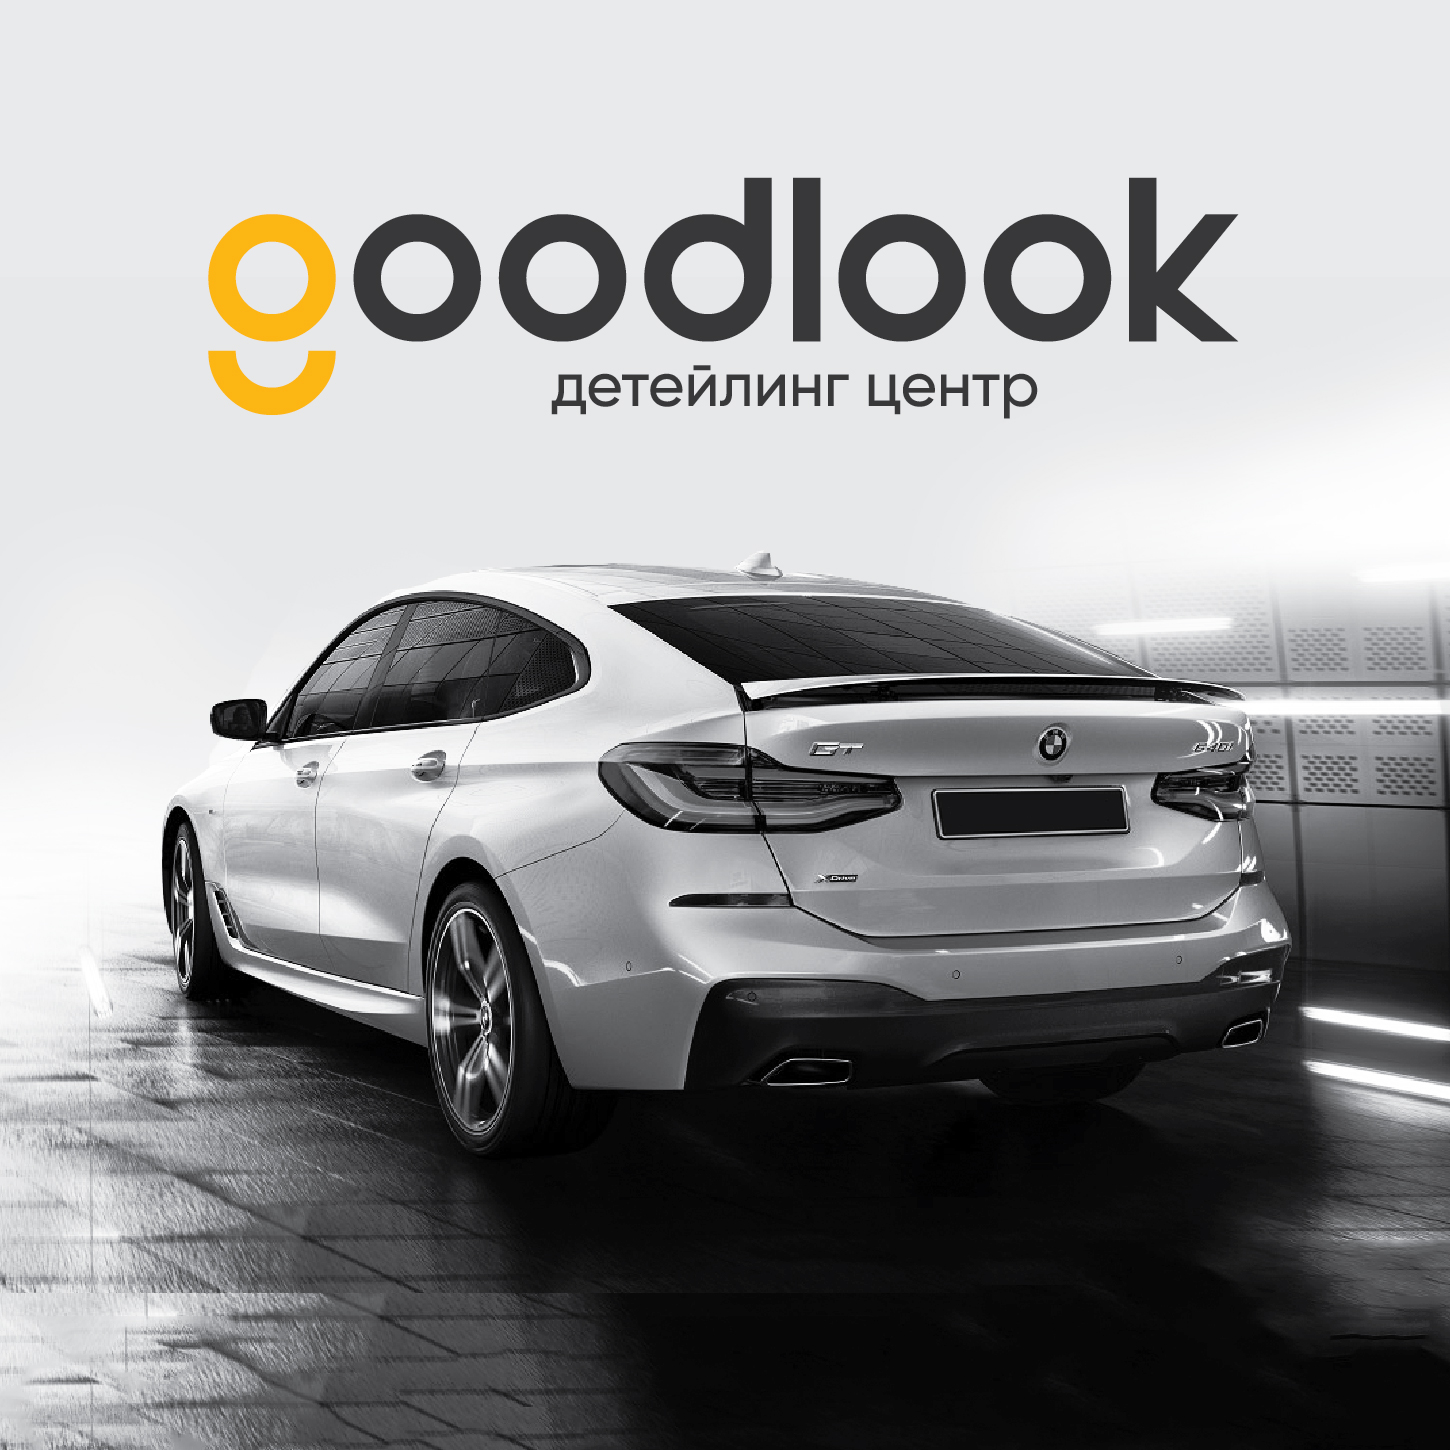 логотип goodlook